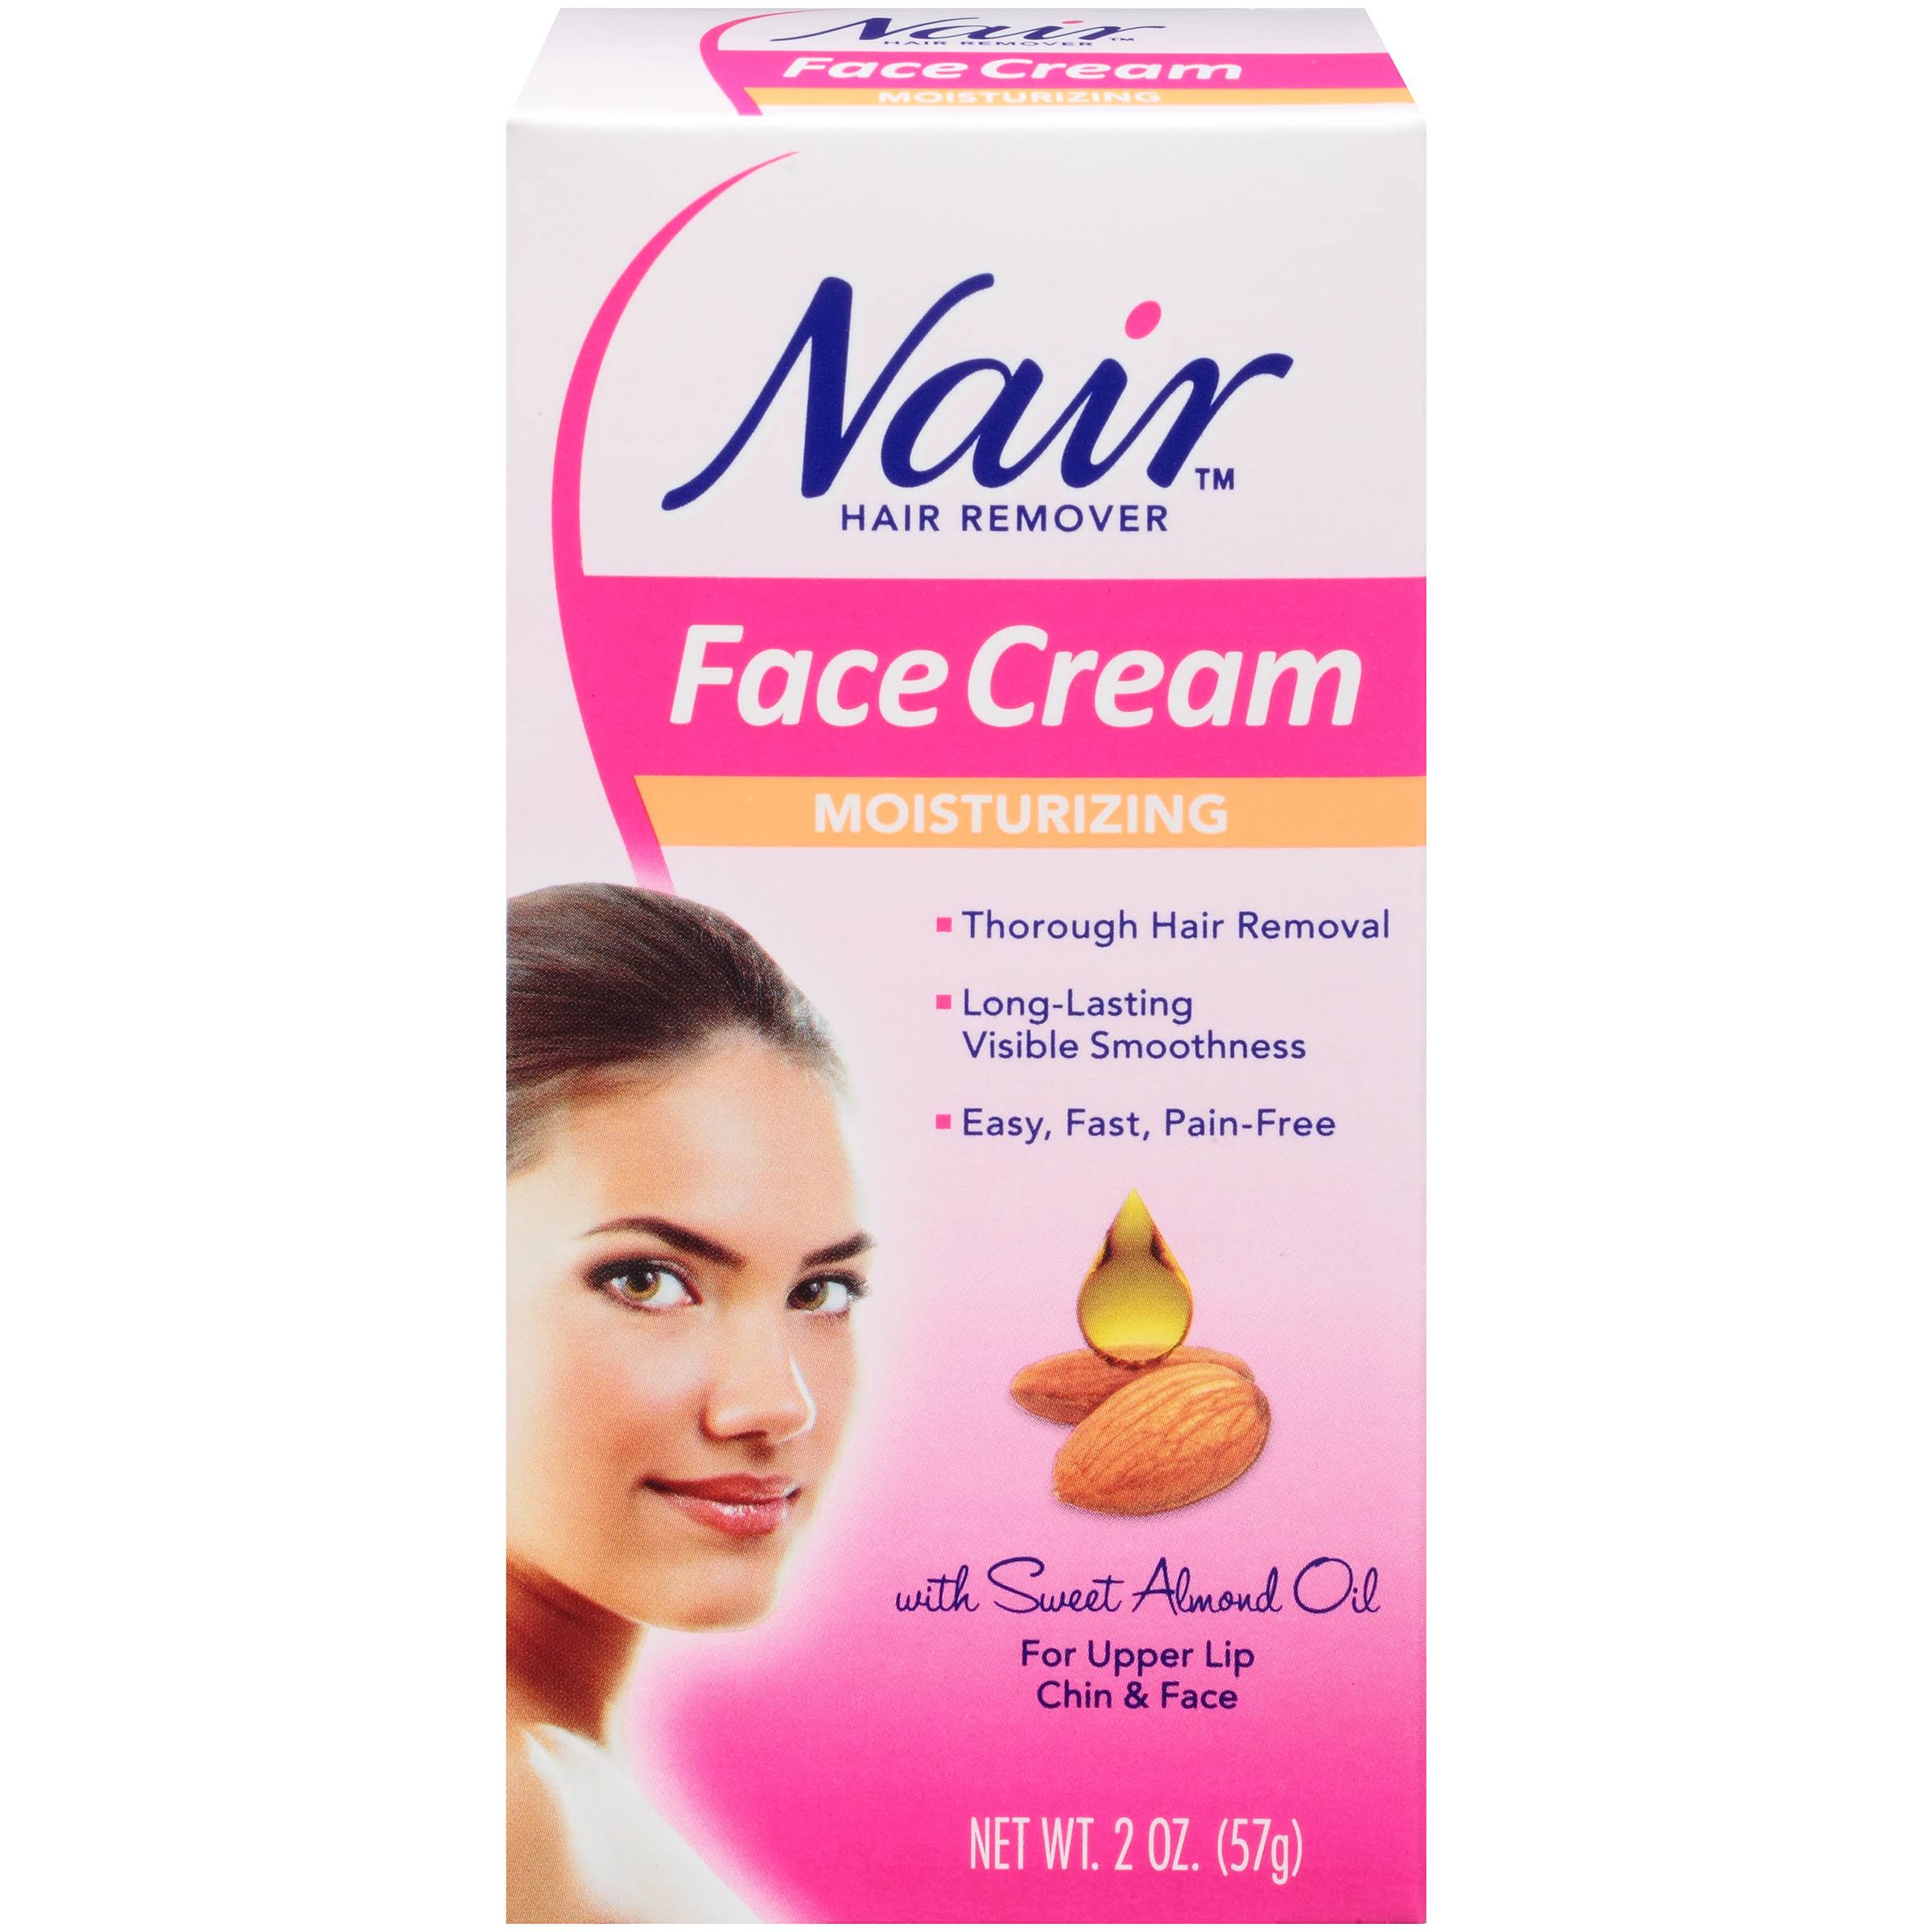 Nair Face Cream - 57g